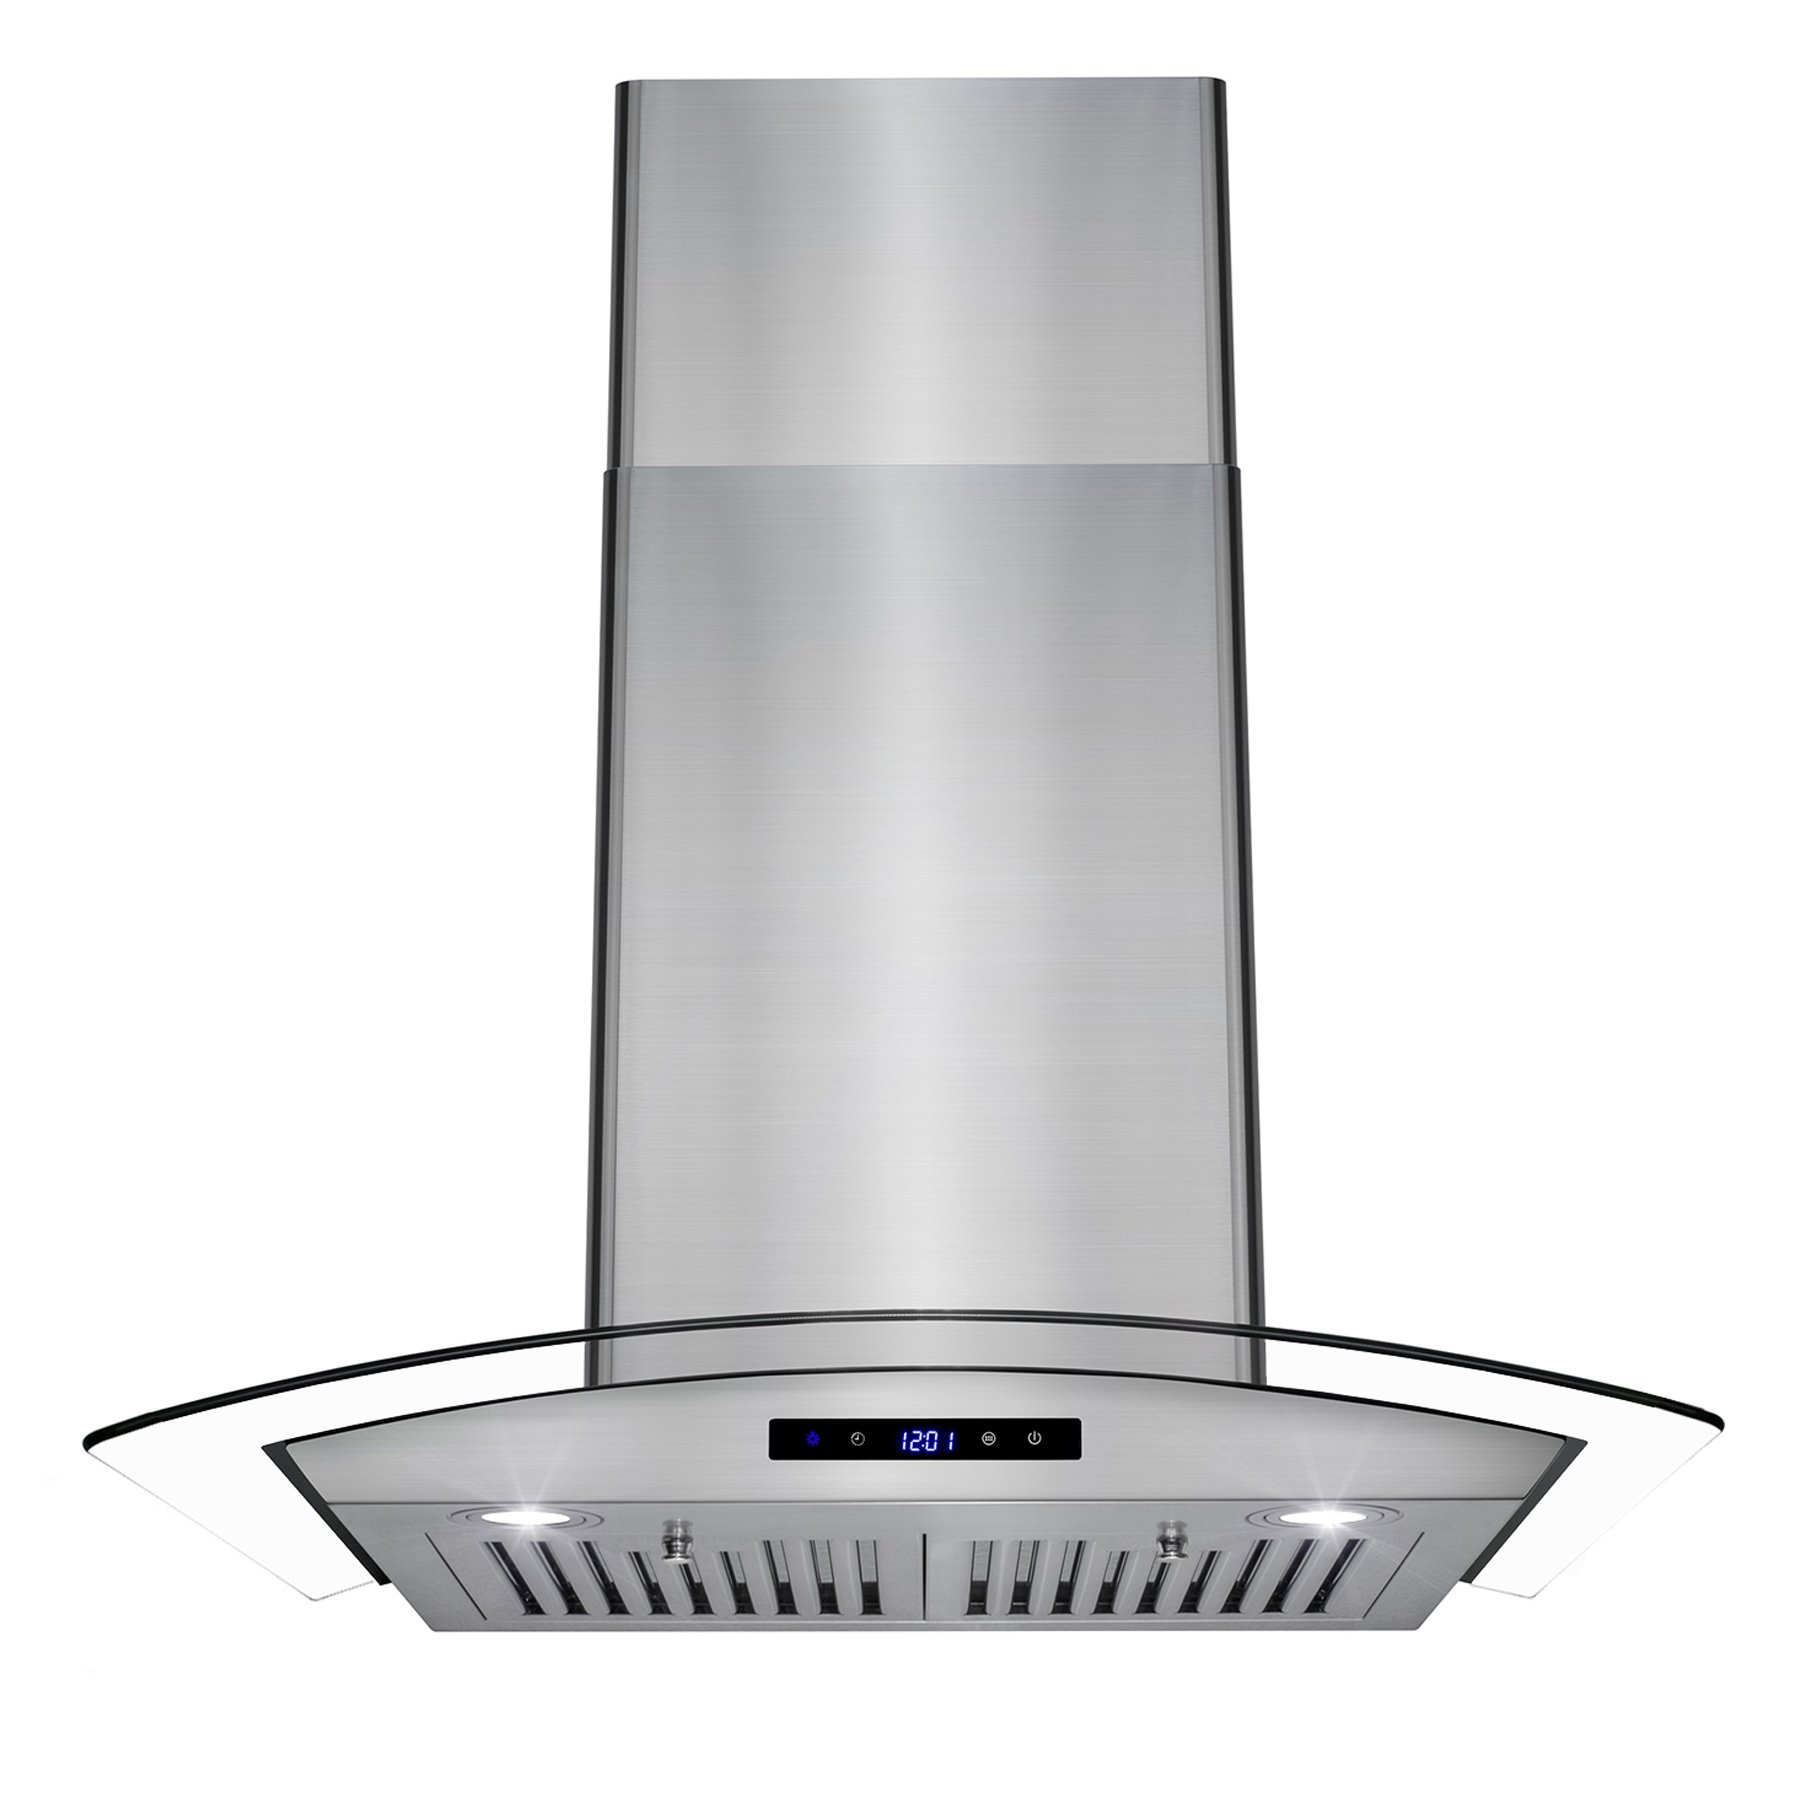 AKDY 30'' Wall Mount LED Display Touch Control Panel Stainless Steel Tempered Glass Kitchen Cooking Vent Fan Range Hood